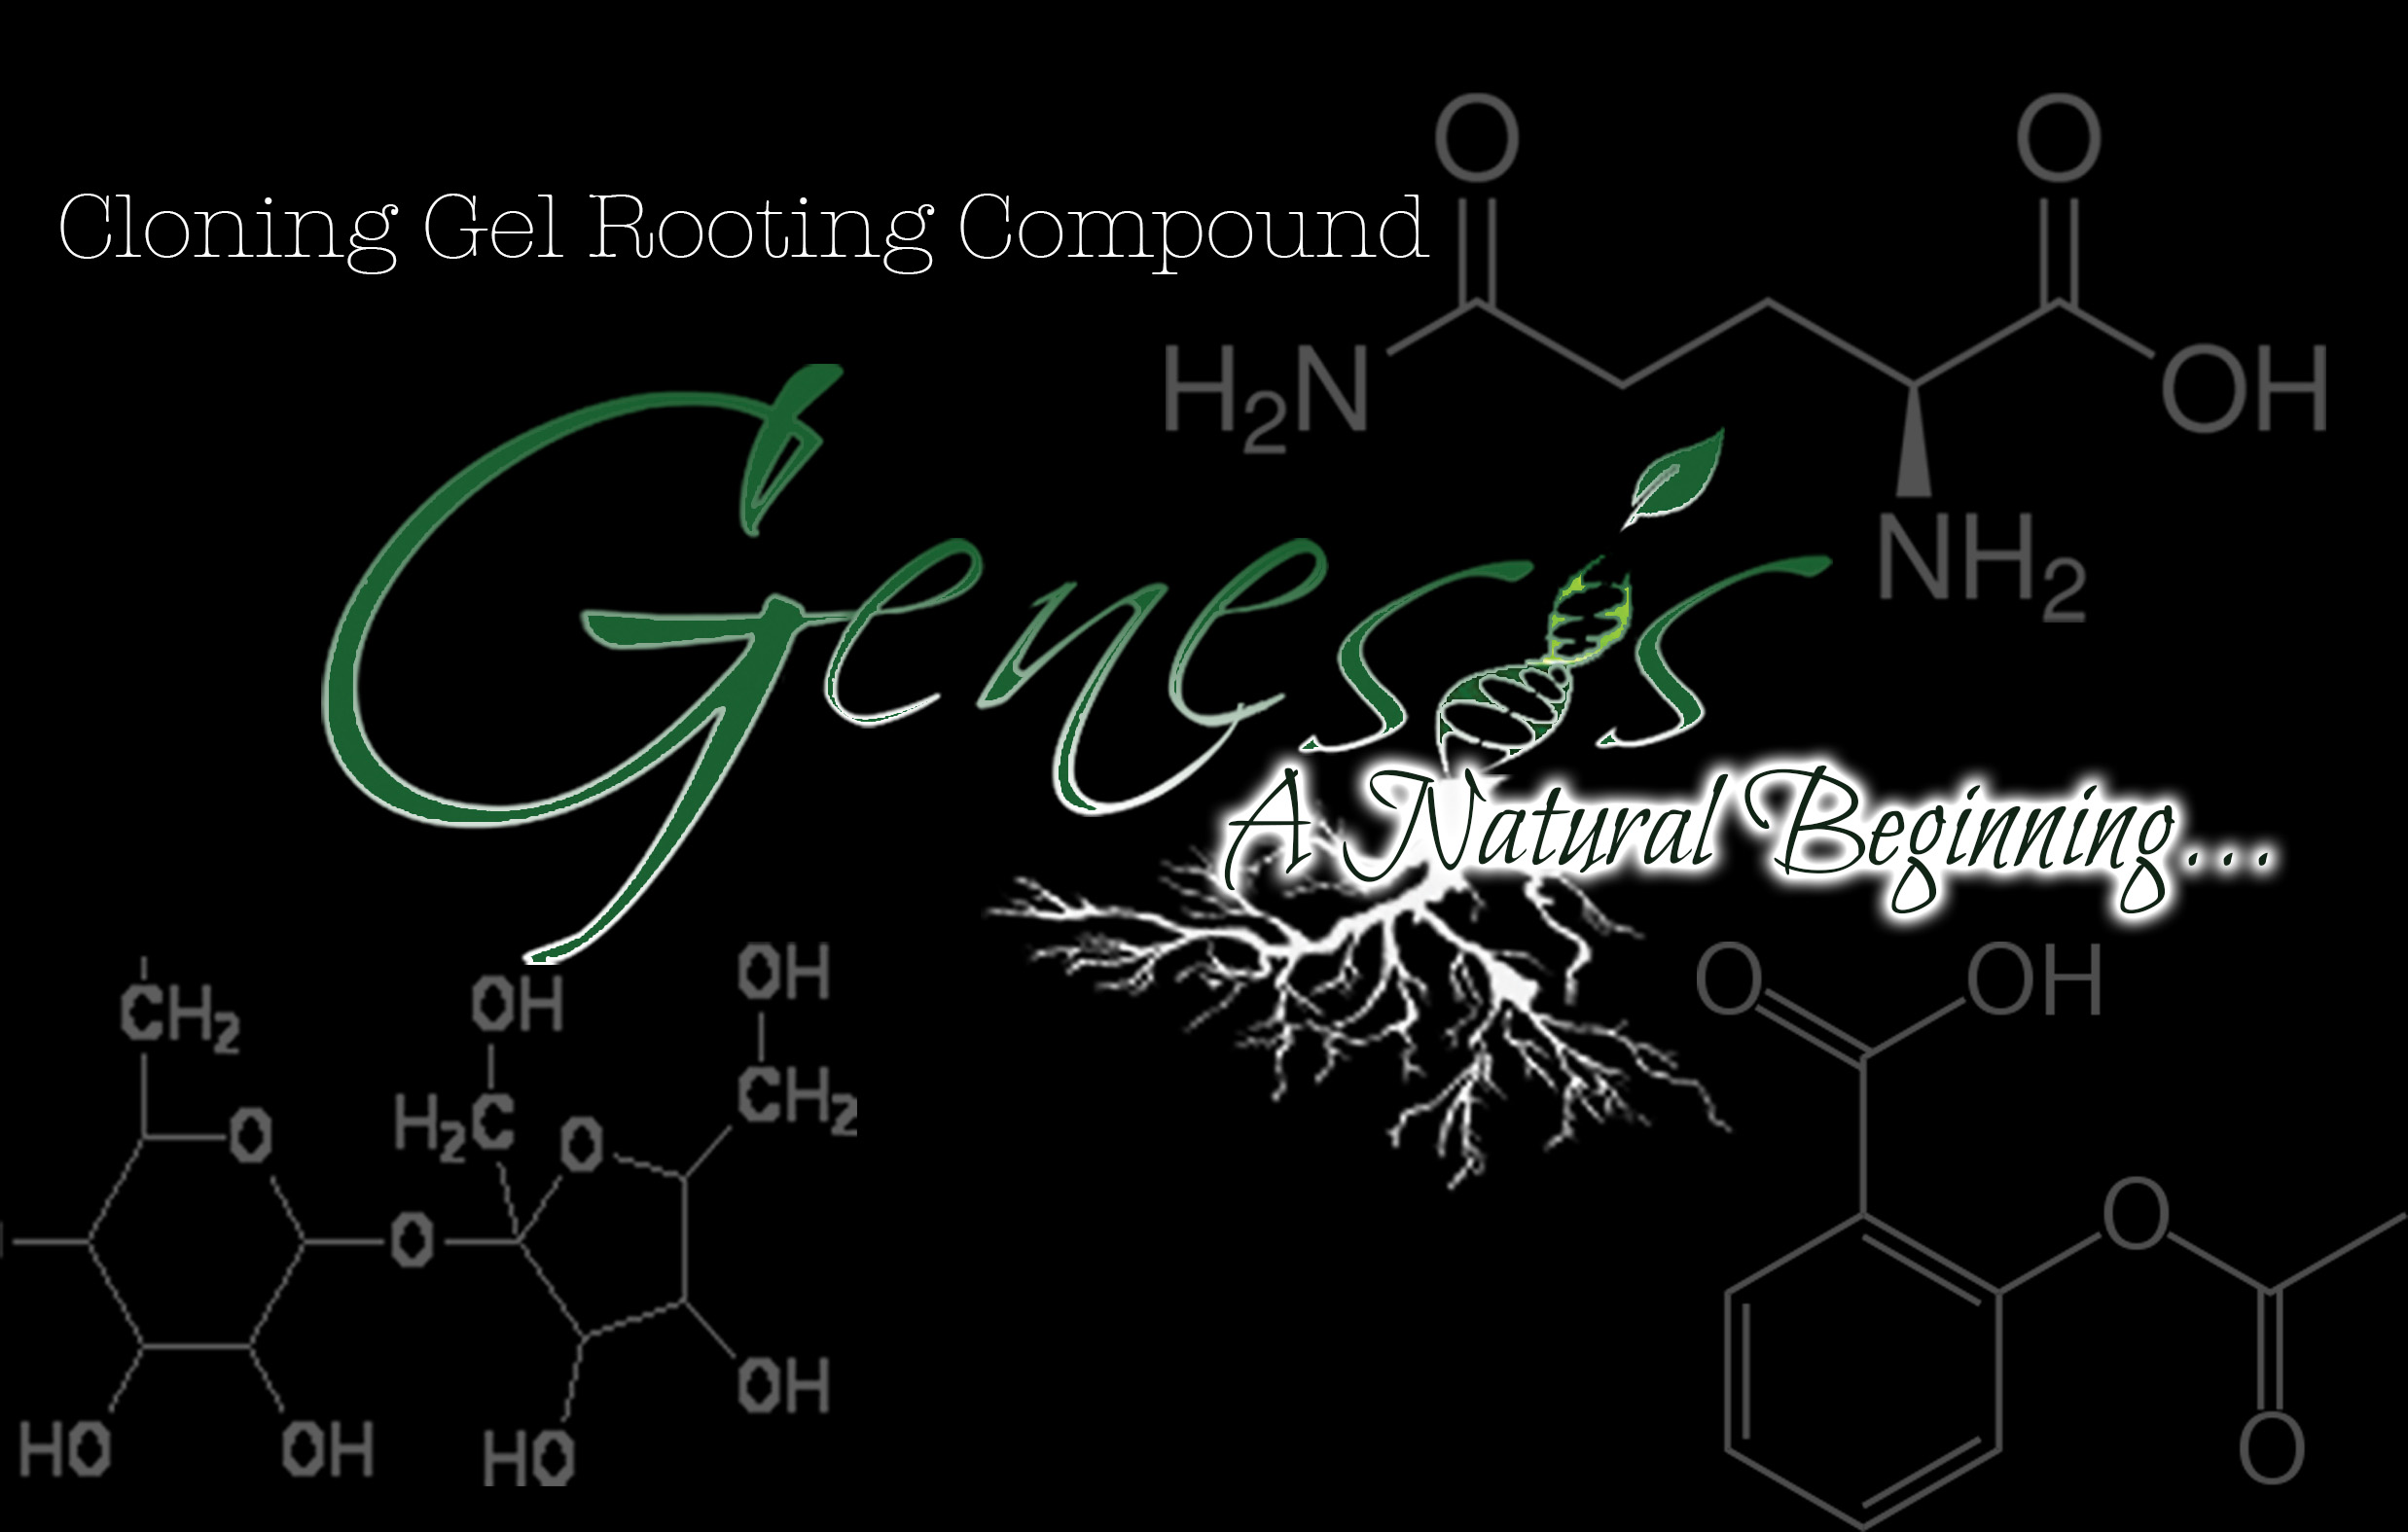 Genesis sticker black molecule